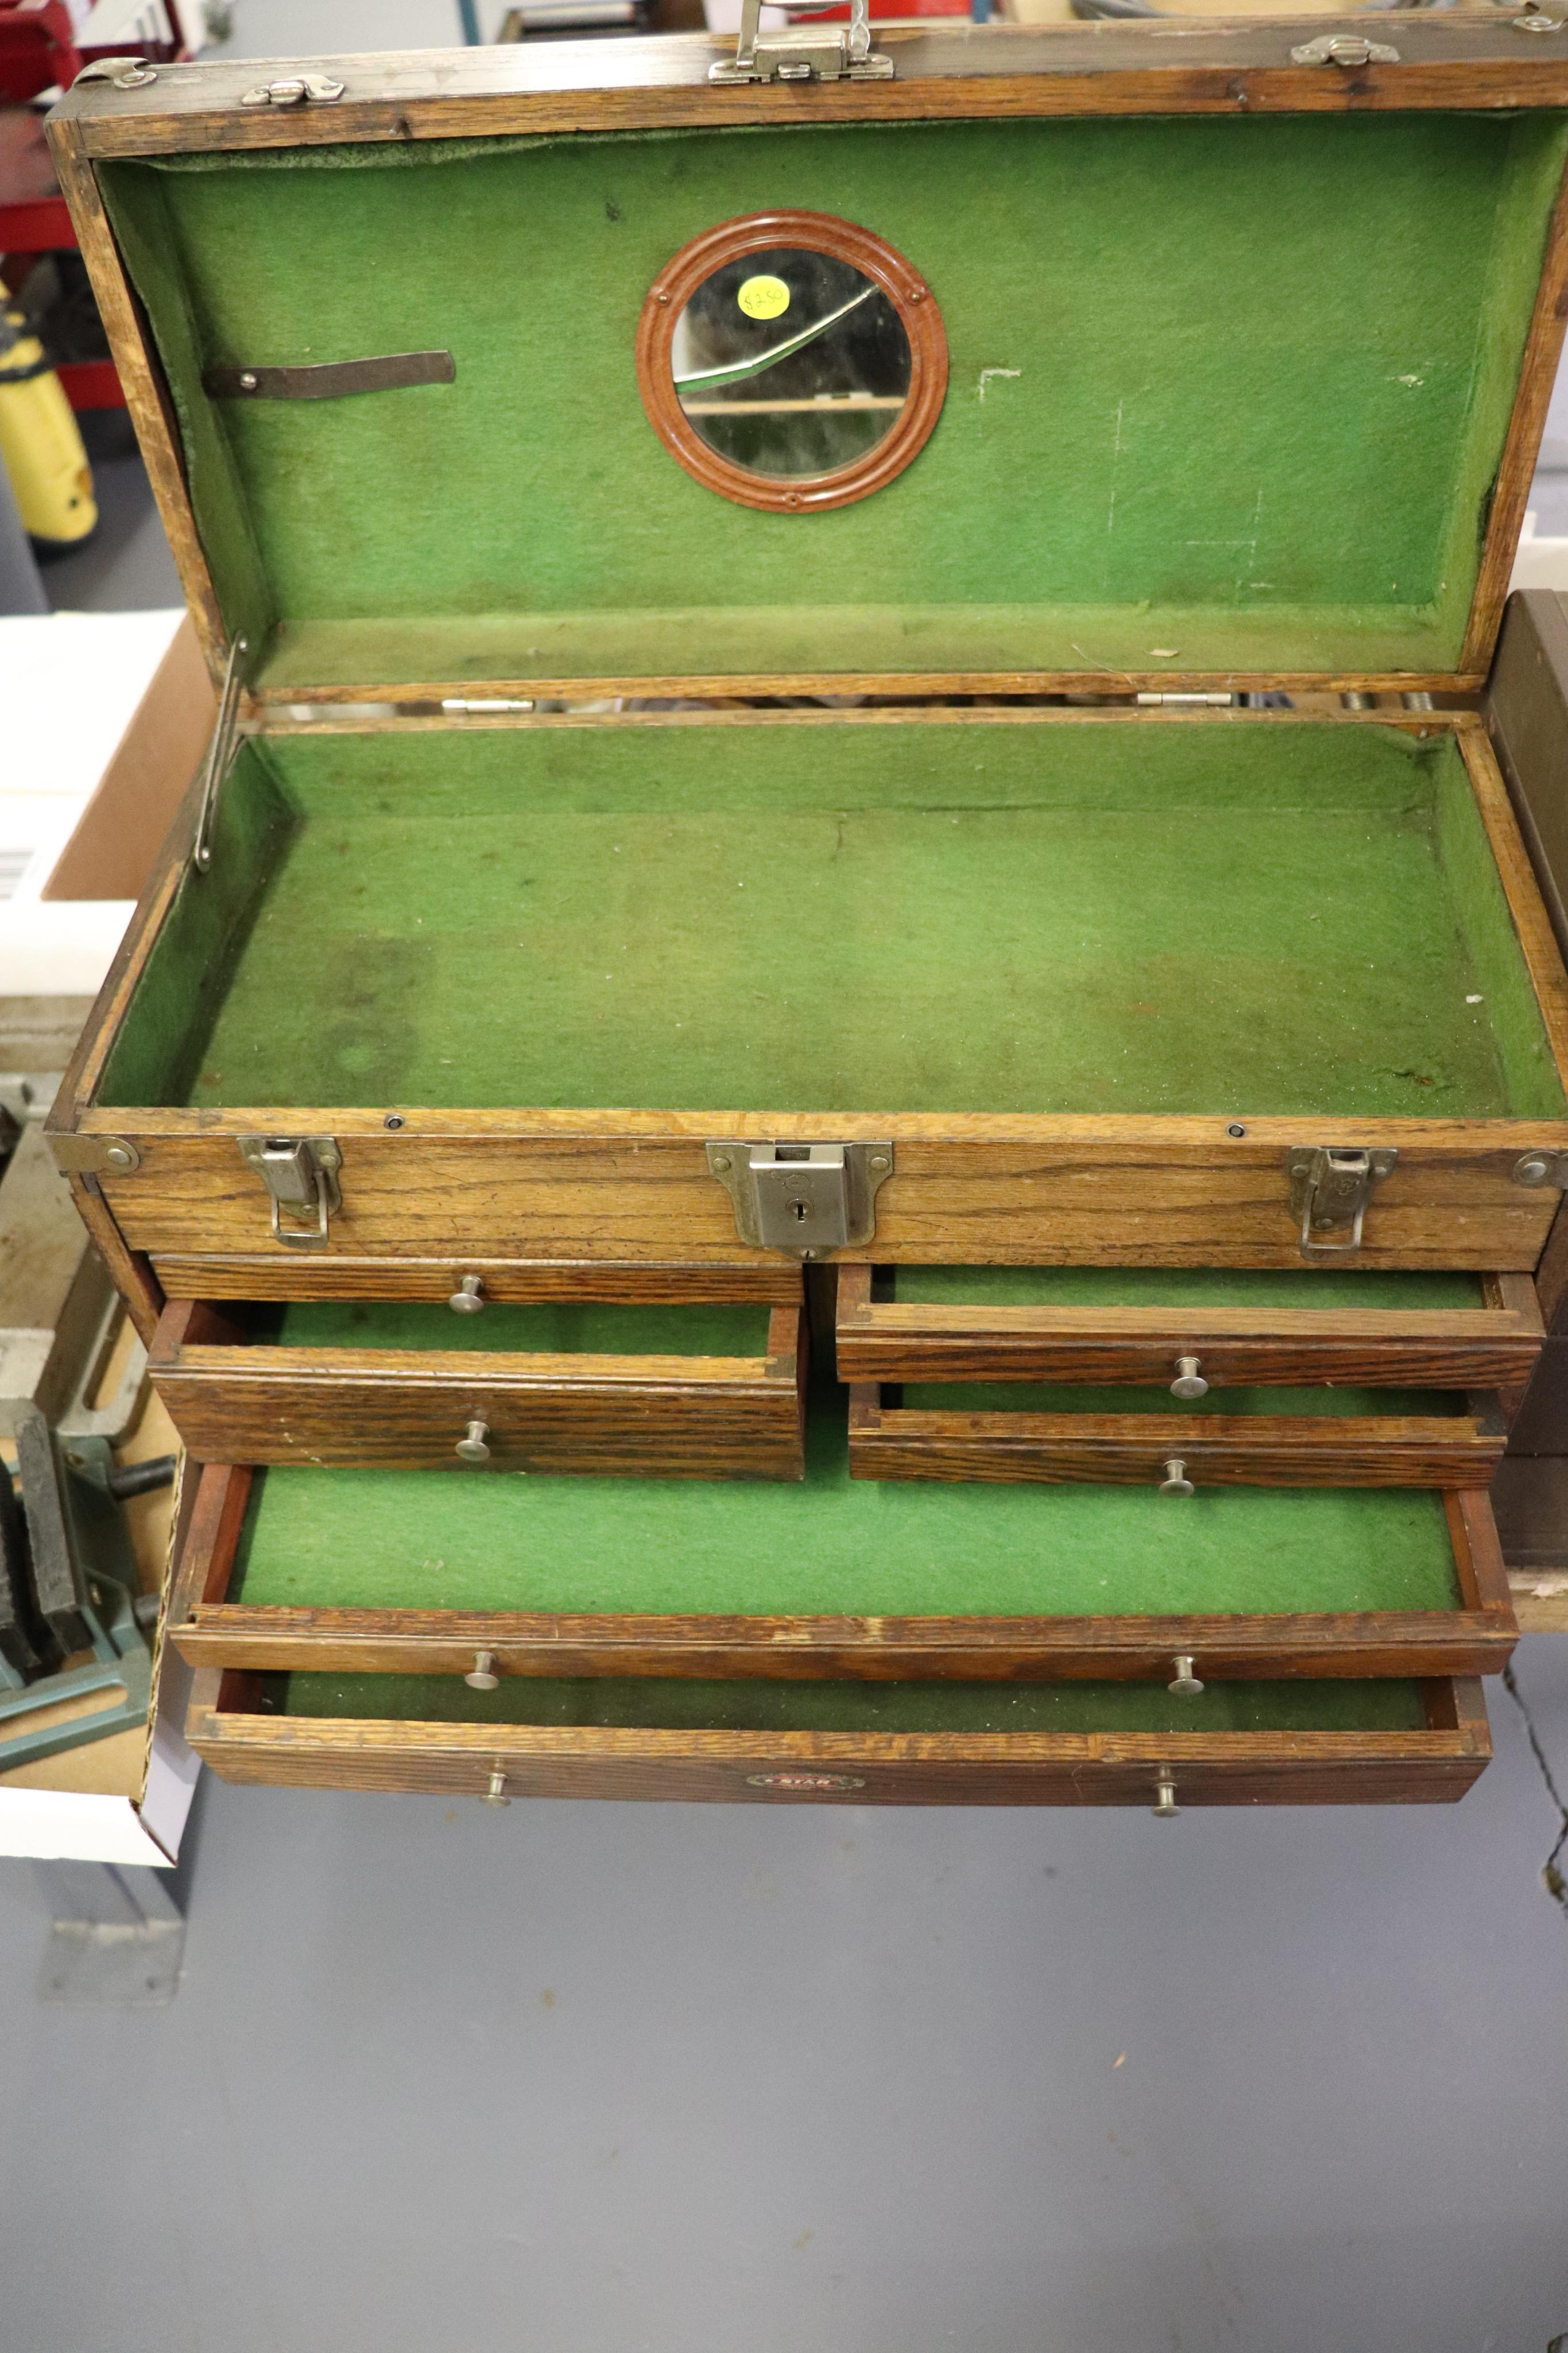 National Tool Chest tool box - Image 2 of 2